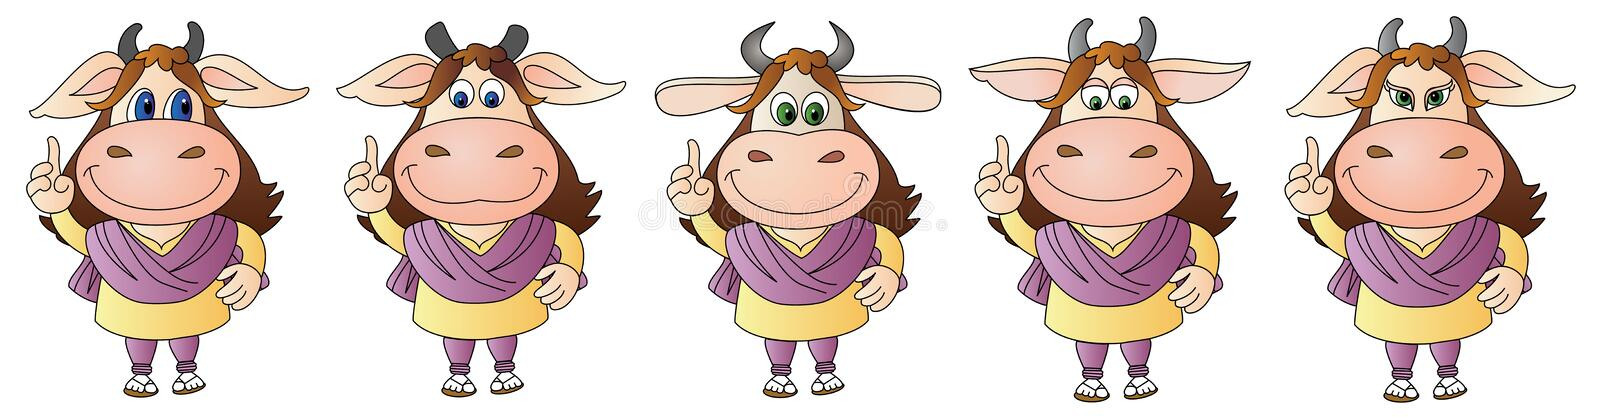 Cow 9 - Composite royalty free stock image